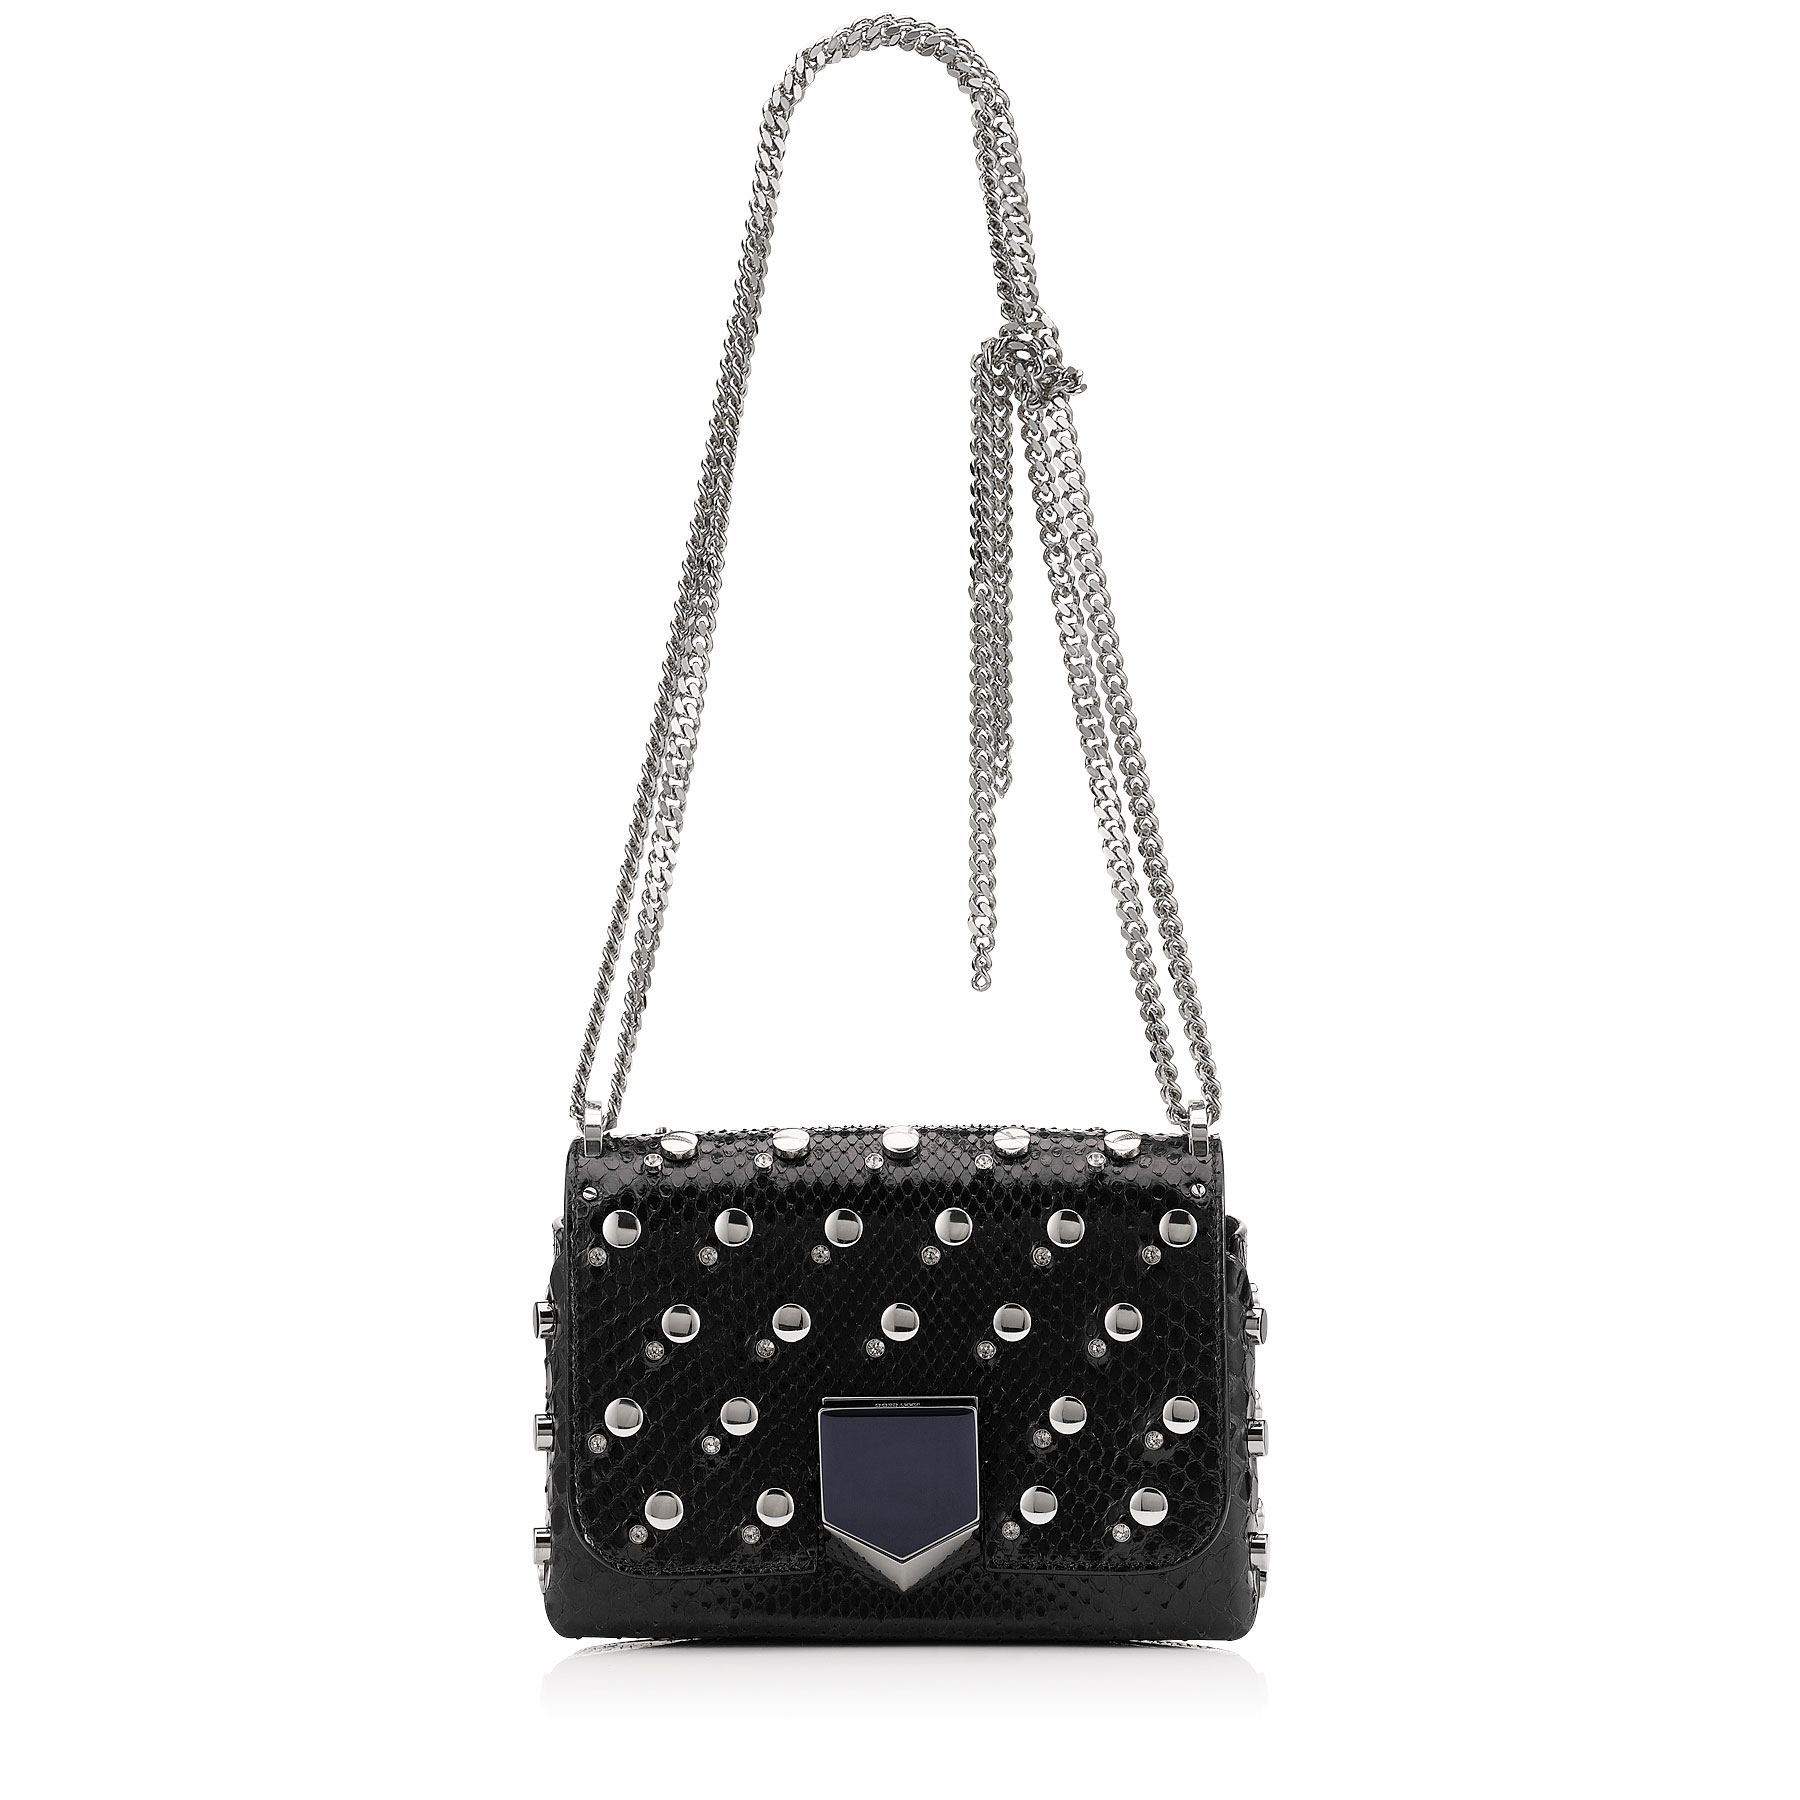 LOCKETT PETITE Black Python with Mix Studs and Crystals Shoulder Bag